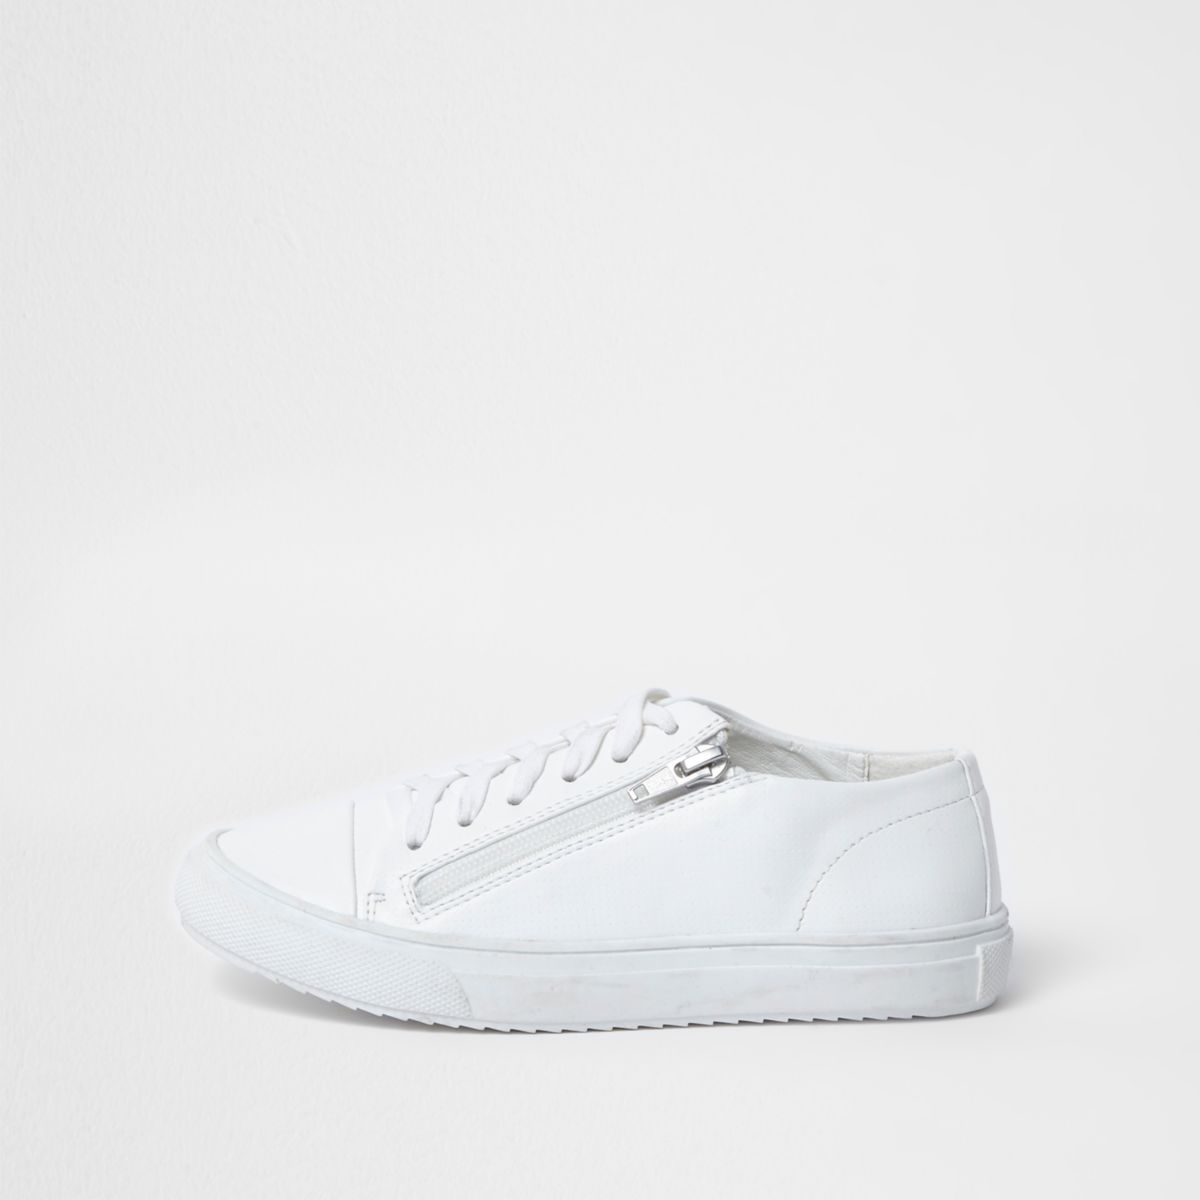 Kids white lace-up zip side sneakers